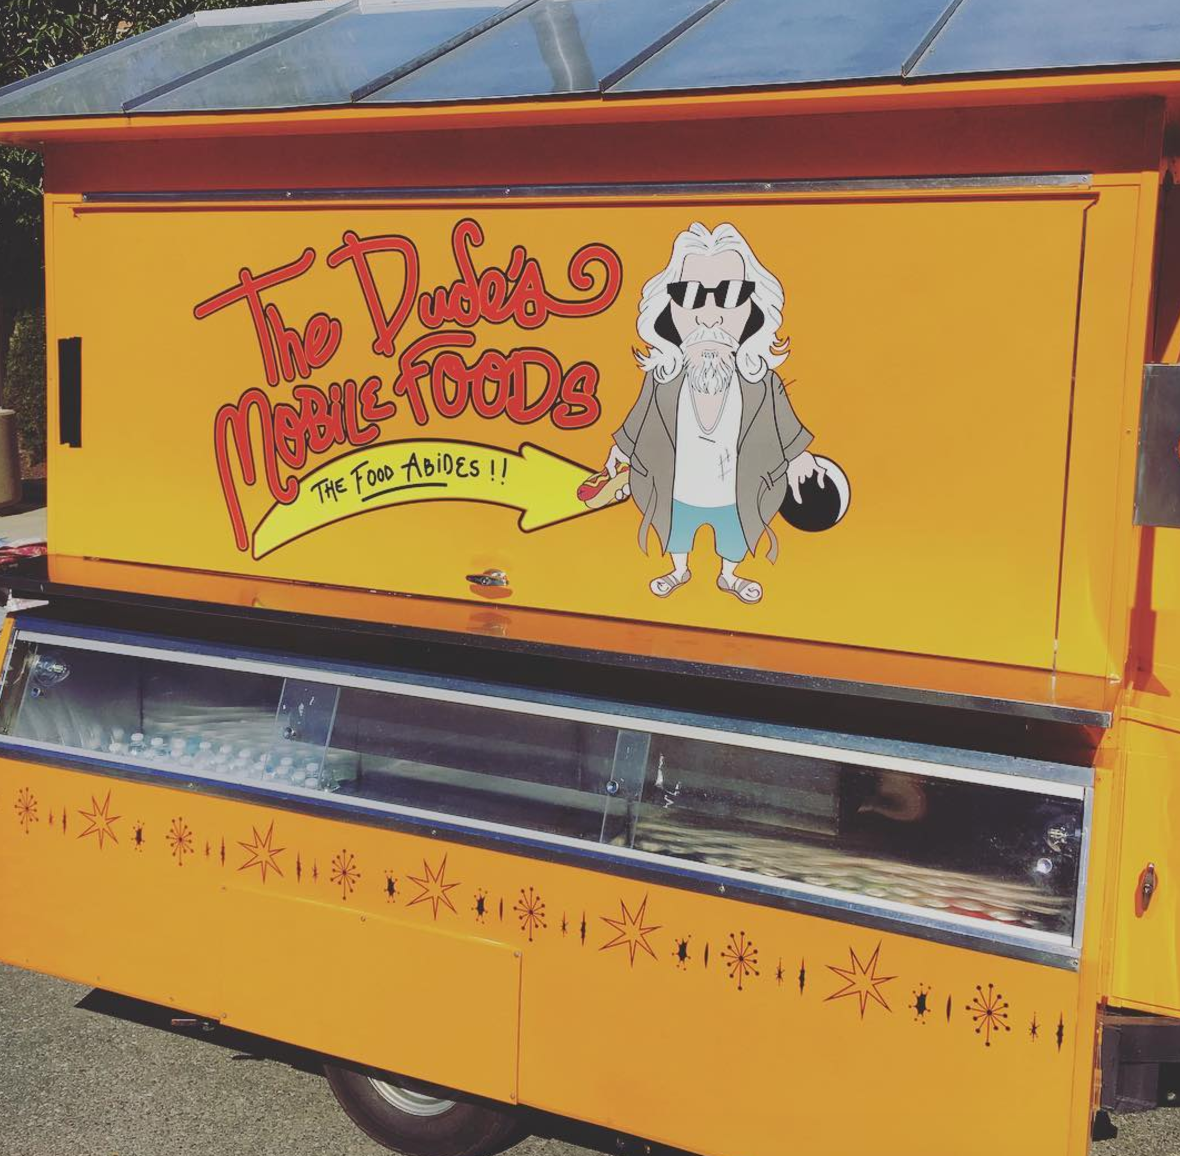 THE DUDE'S MOBILE FOODS    A branding project for a Big Lebowski style food service.